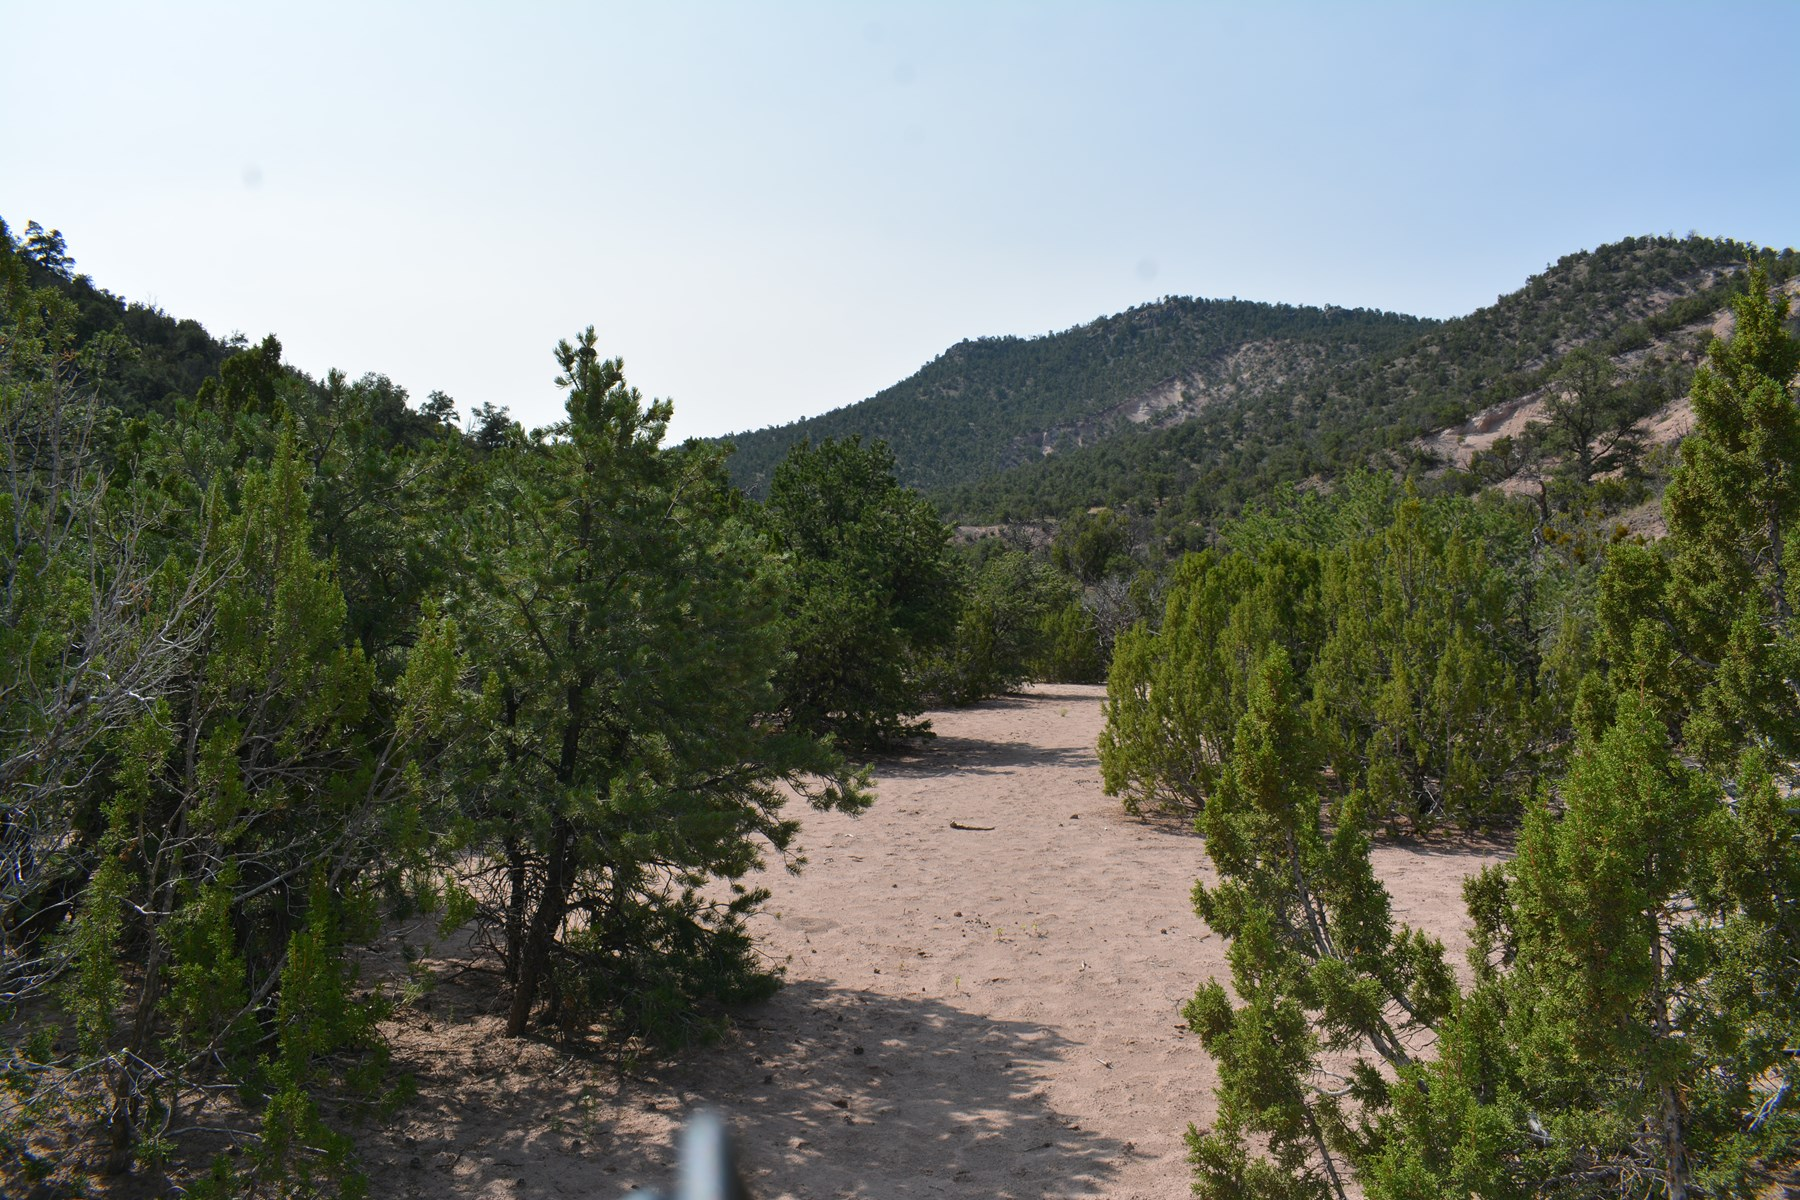 United Country Mike Krieg Mountain off grid land for sale